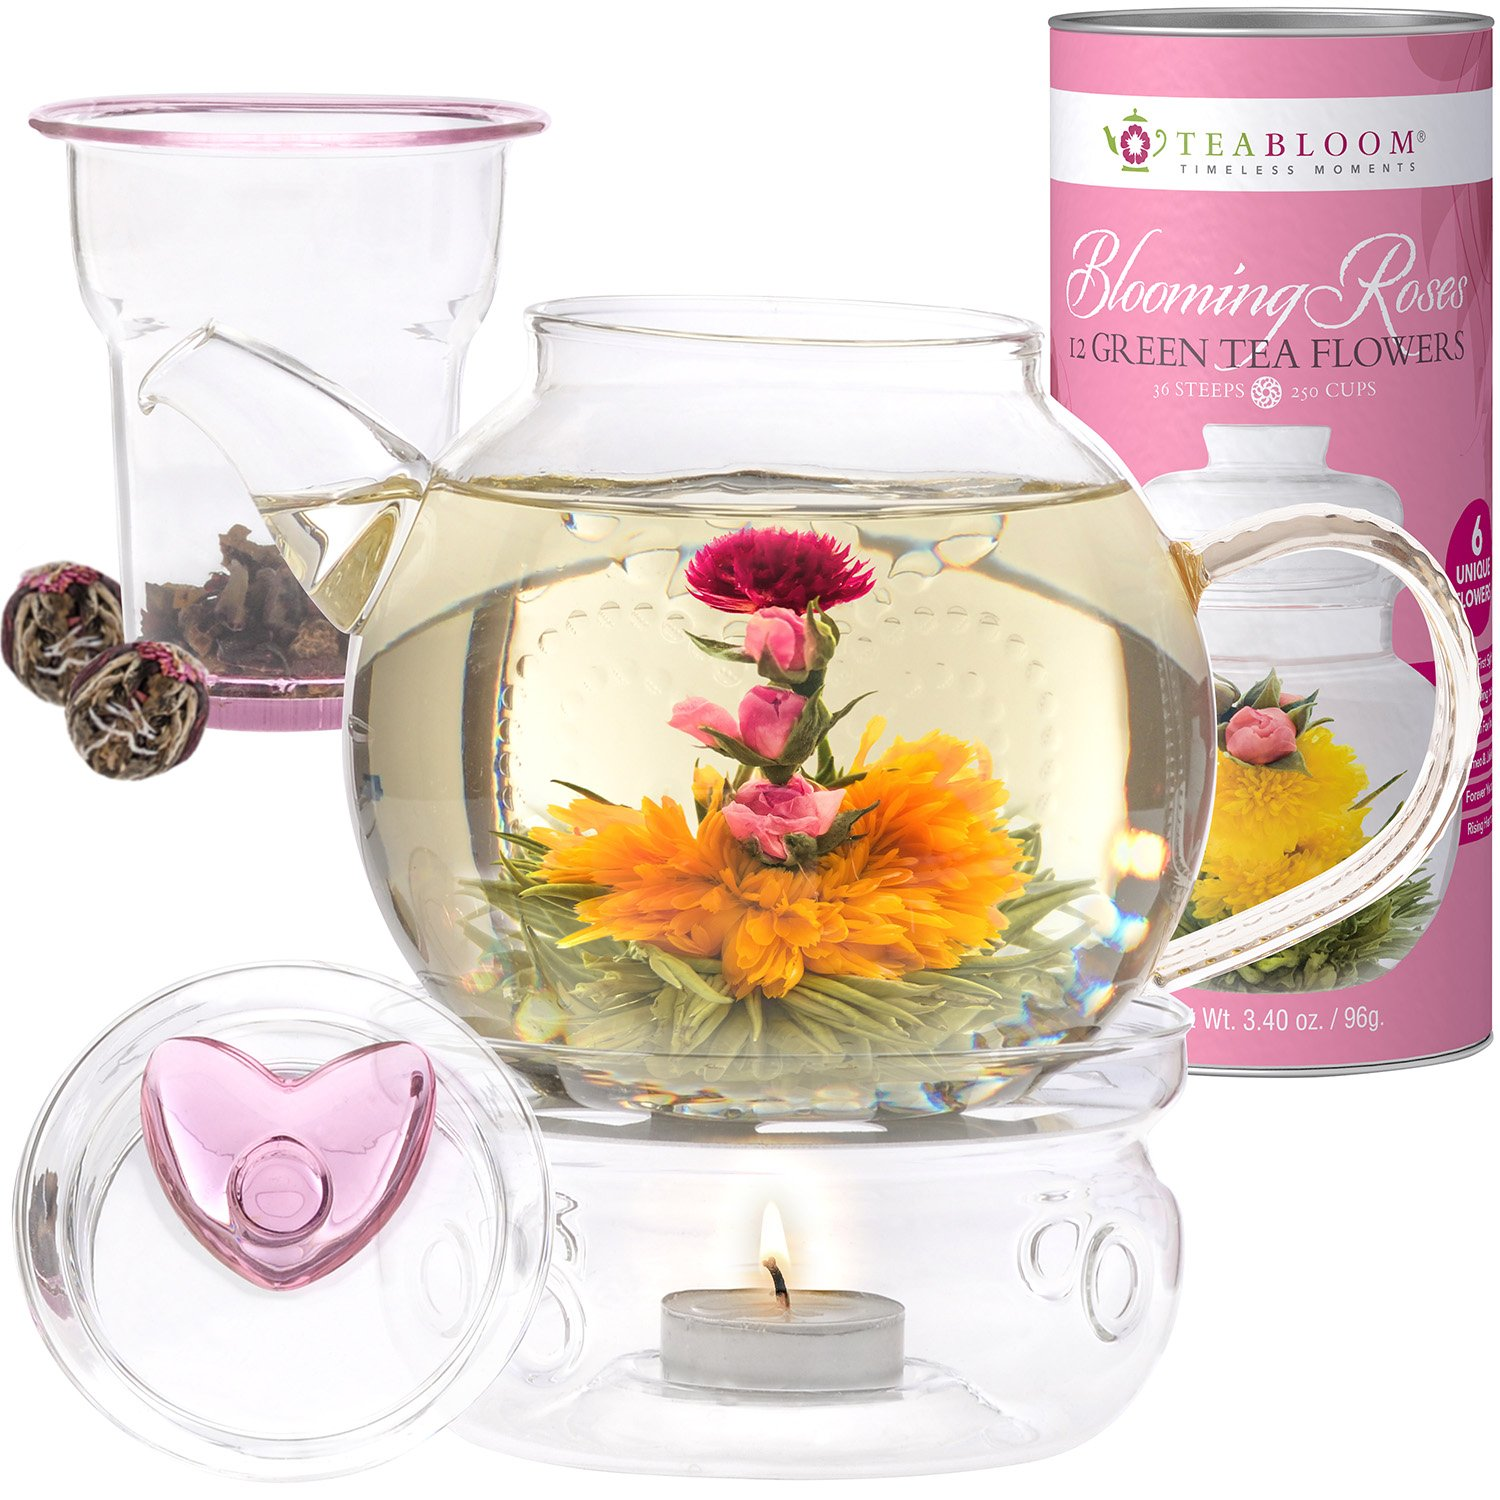 Teabloom Eternal Love Tea Gift Set - 36 oz Glass Teapot, Heart-Topped Lid, Teapot Warmer, Glass Loose Leaf Tea Infuser & Canister of 12 Rose Flowering Teas